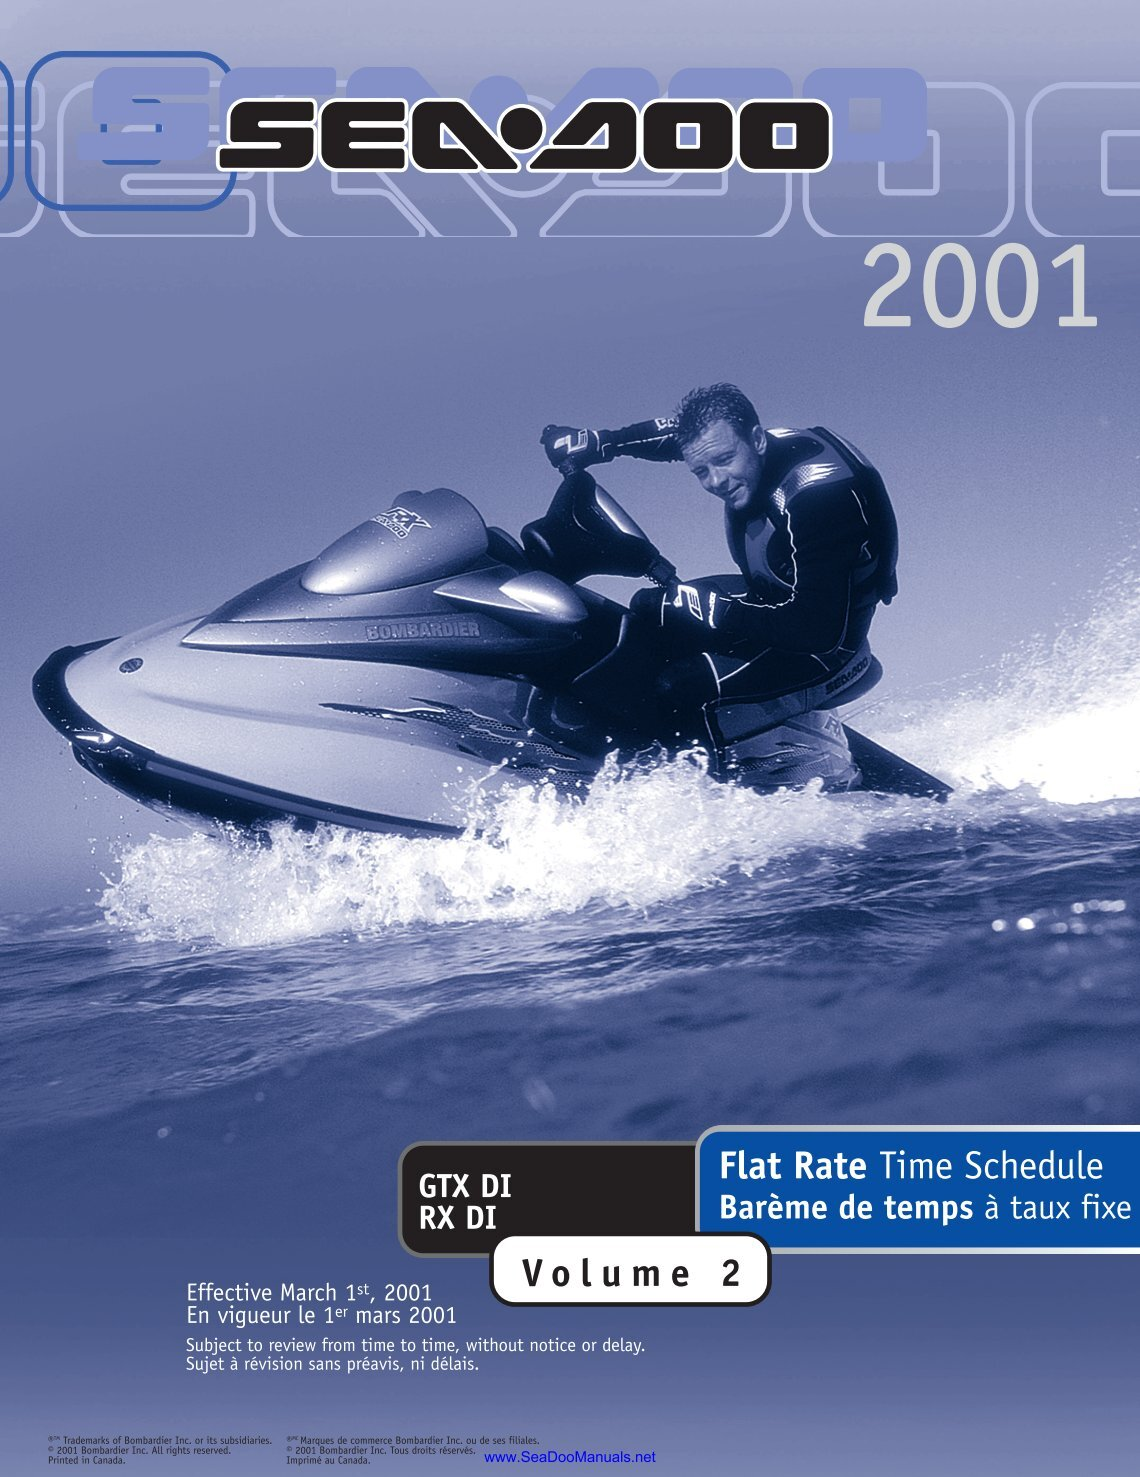 Seadoo manual net user guide manual that easy to read 3 free magazines from seadoomanuals net rh yumpu com seadoo manual online seadoo manual online fandeluxe Images